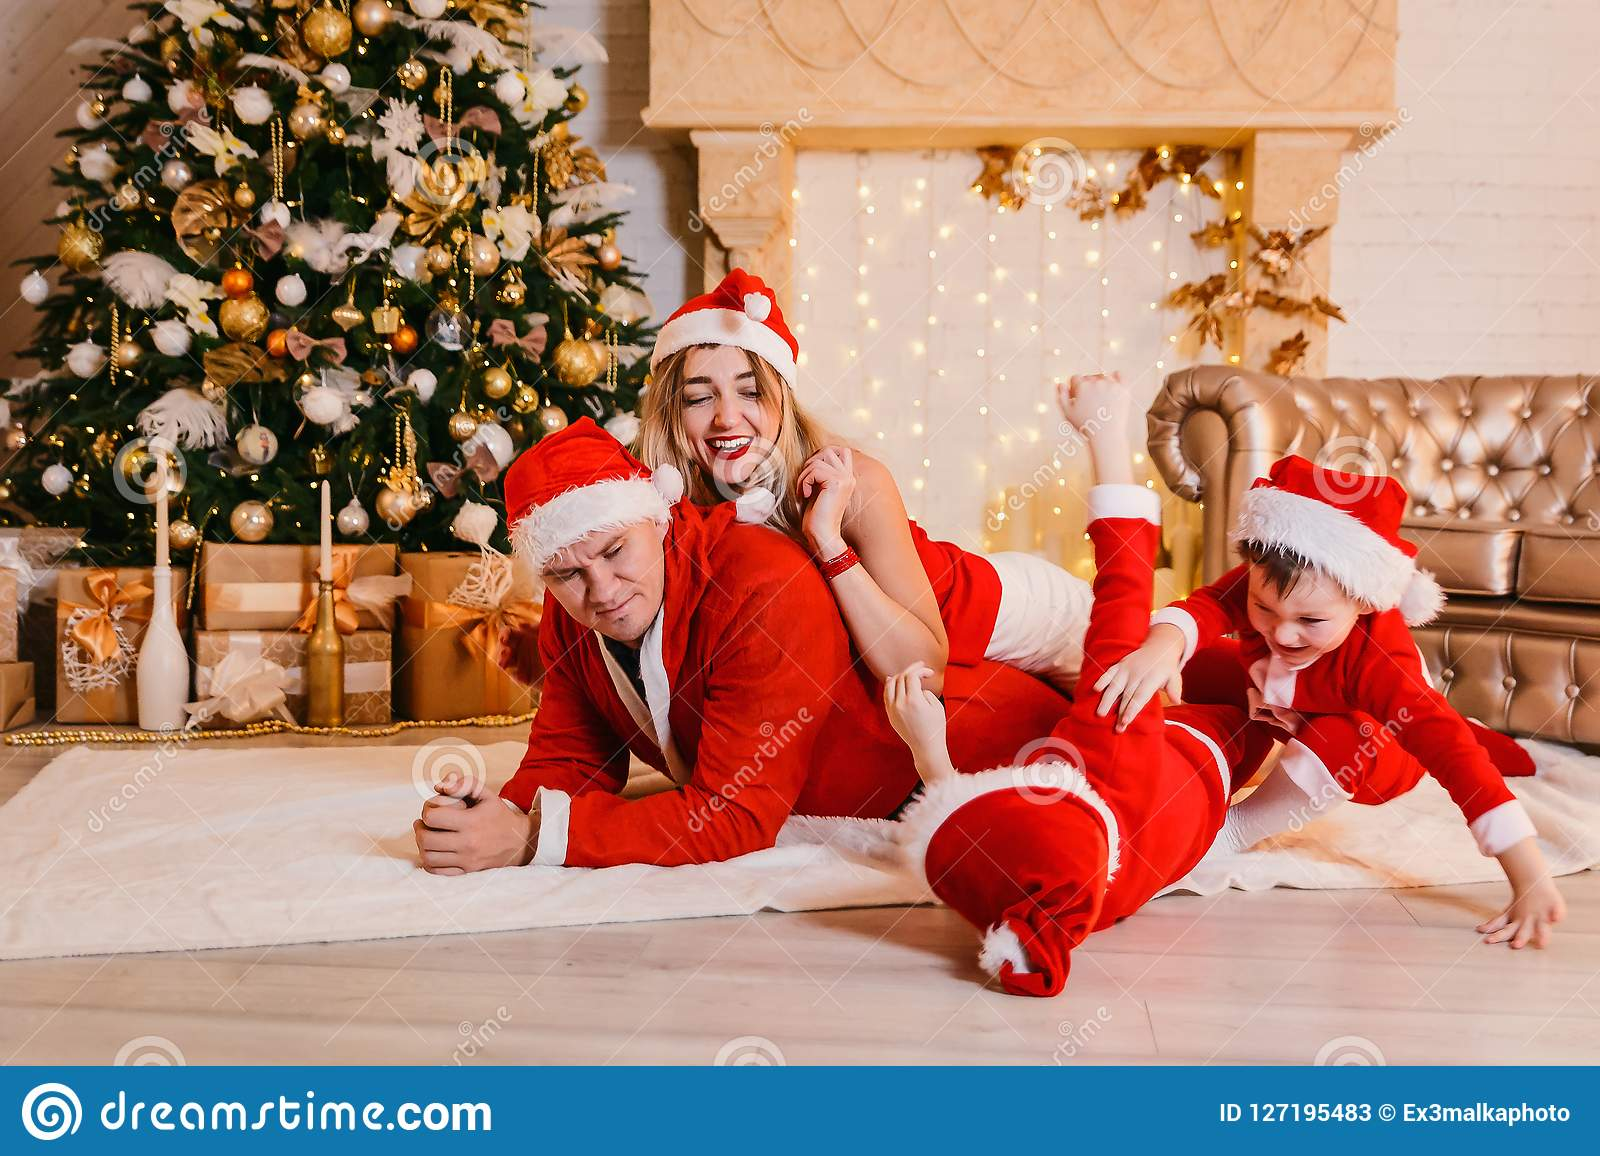 Family with children having fun under the Christmas tree